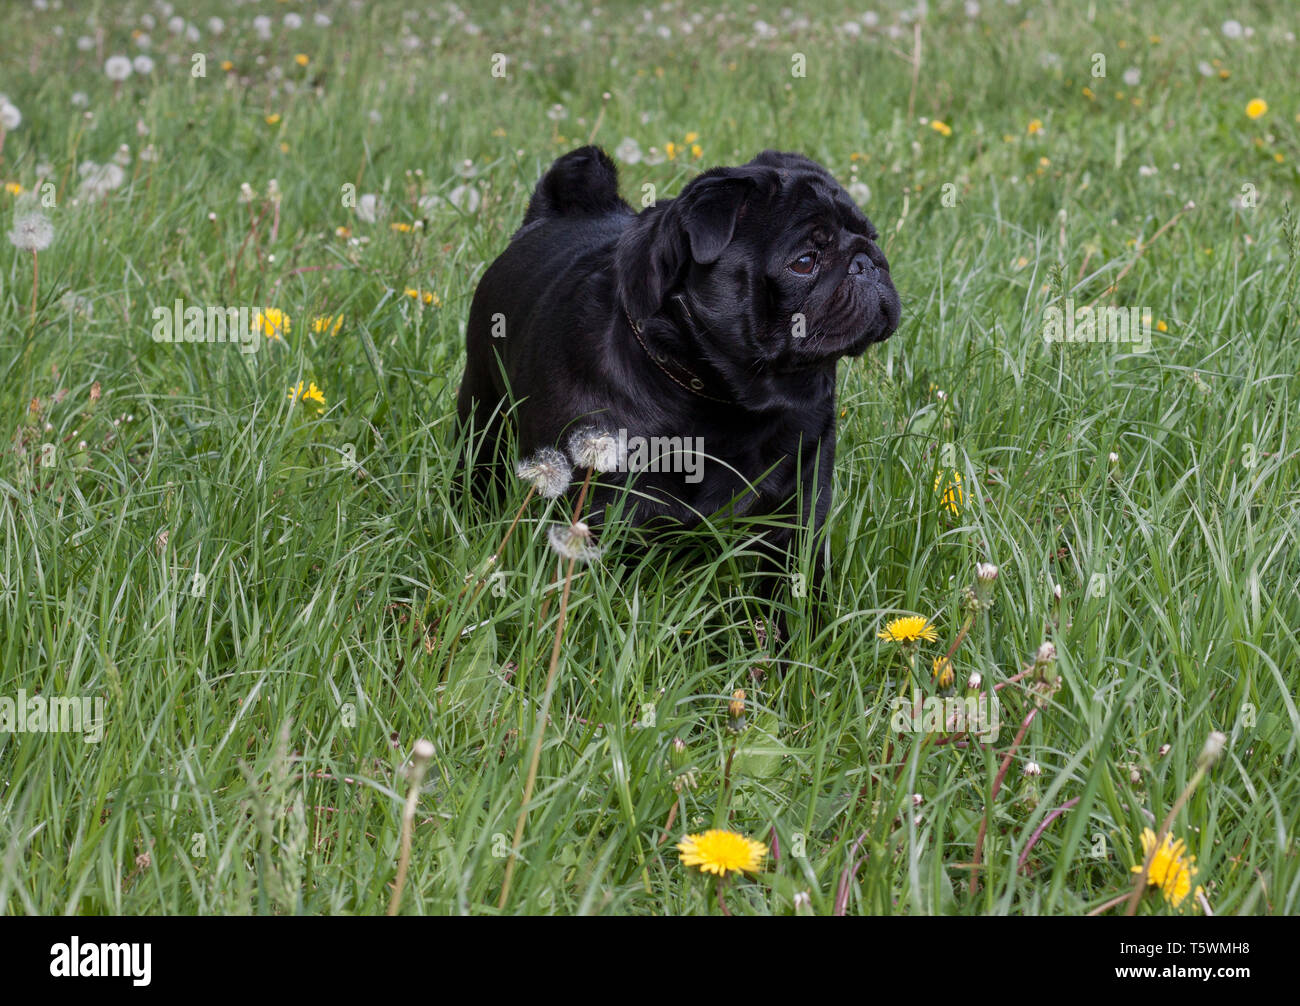 Chinese pug is standing on a spring meadow. Dutch mastiff or mops. Pet animals. - Stock Image